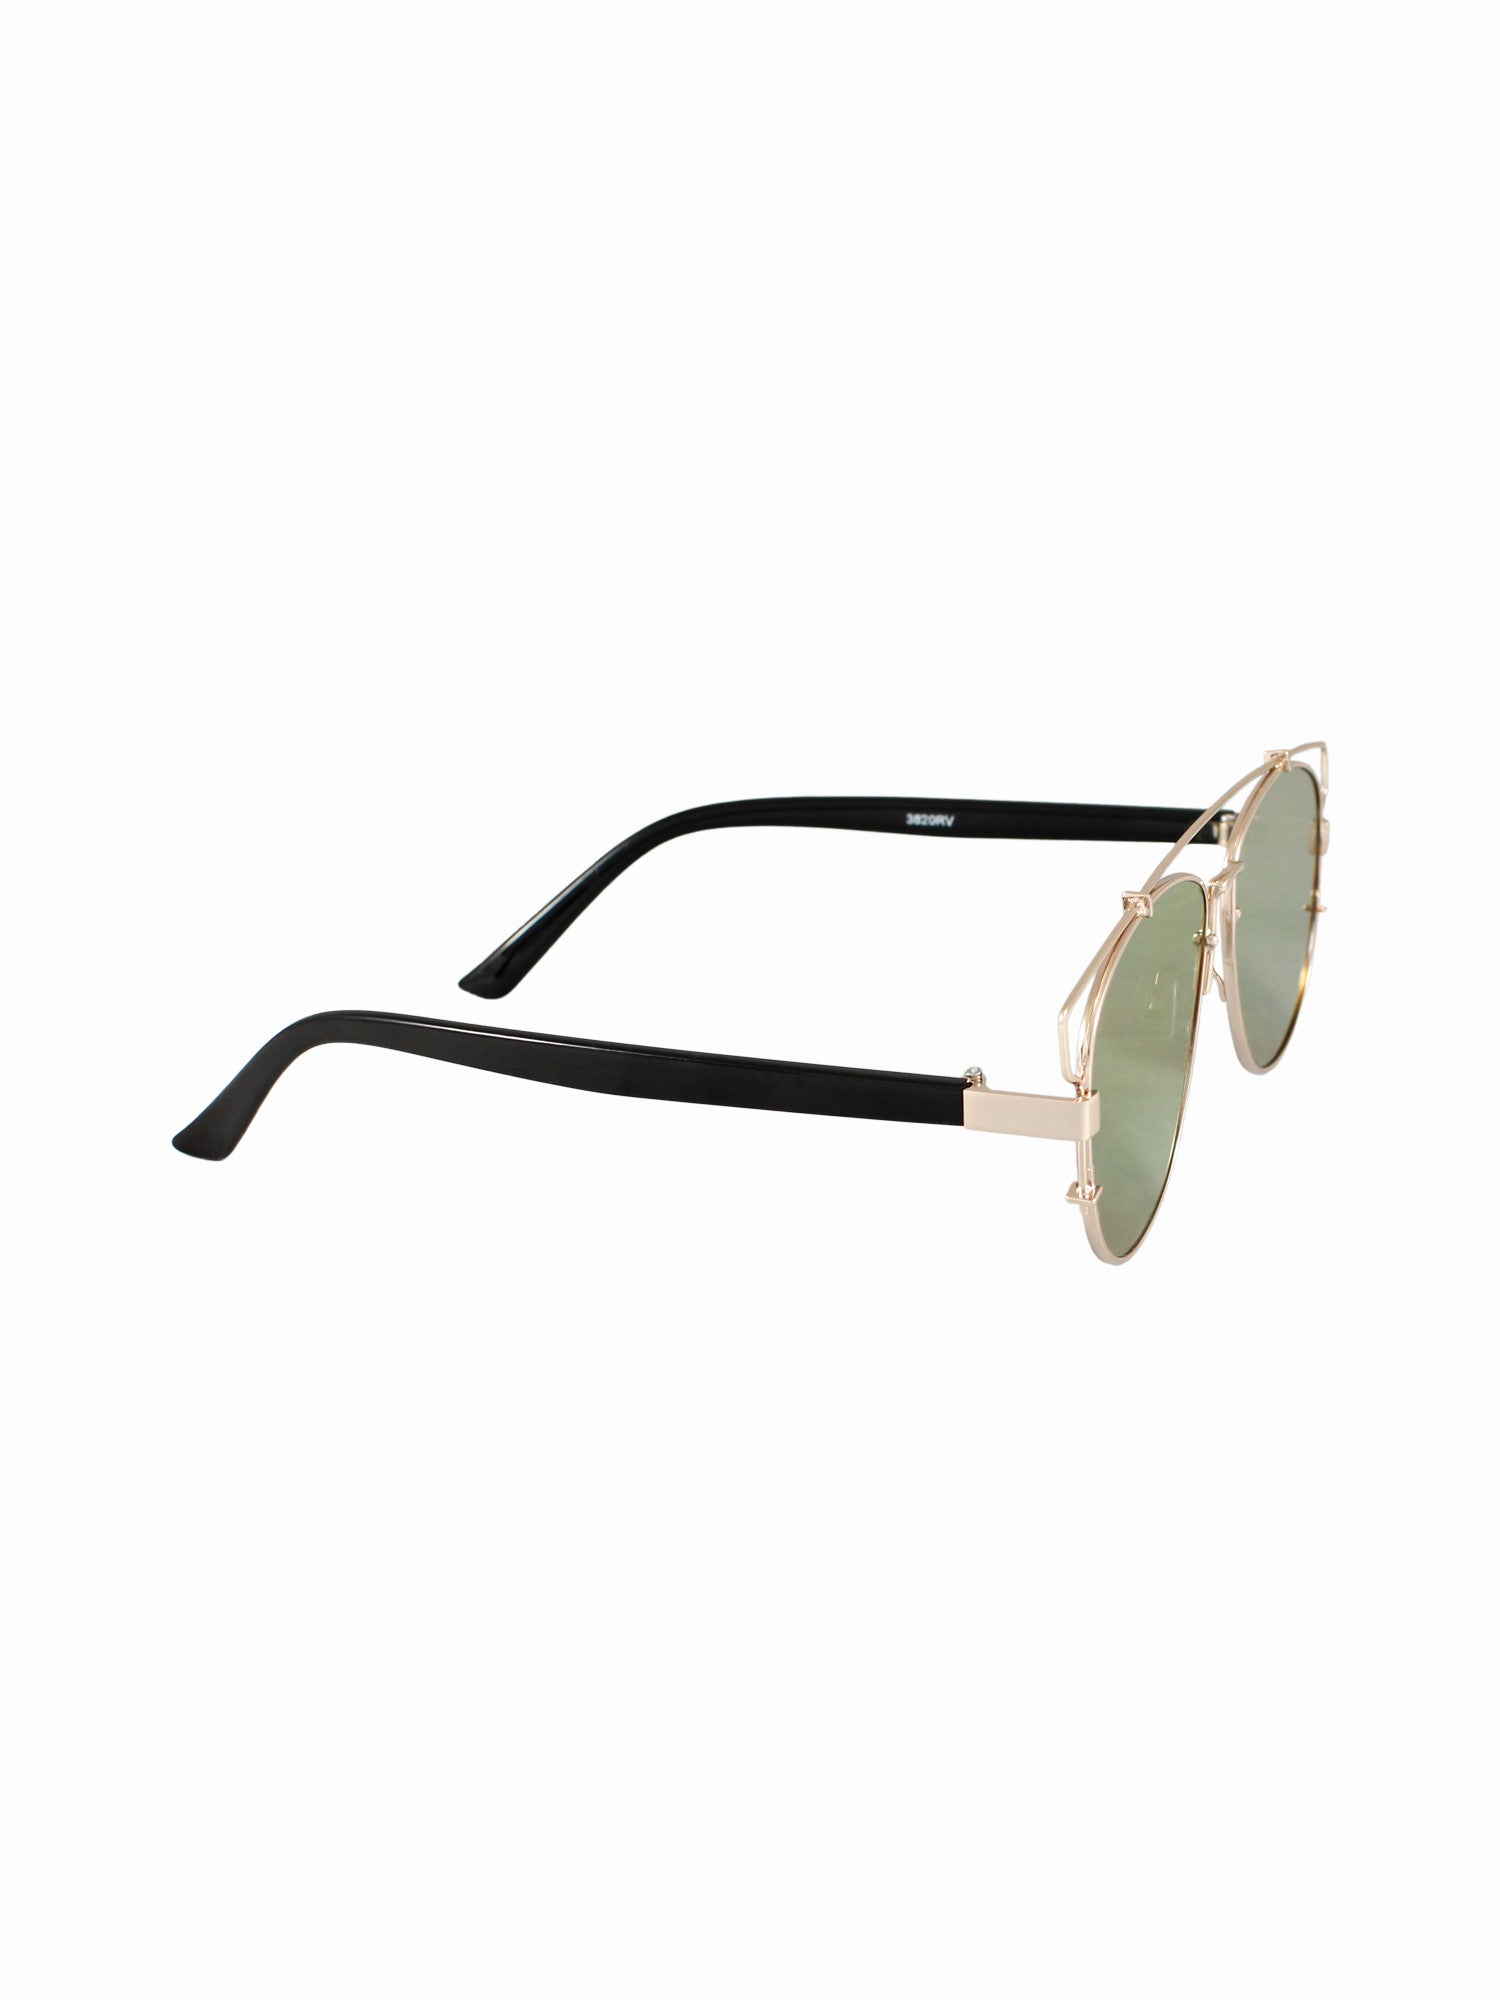 Flat Lens Planet X Sunnies - Gold Soul - 2